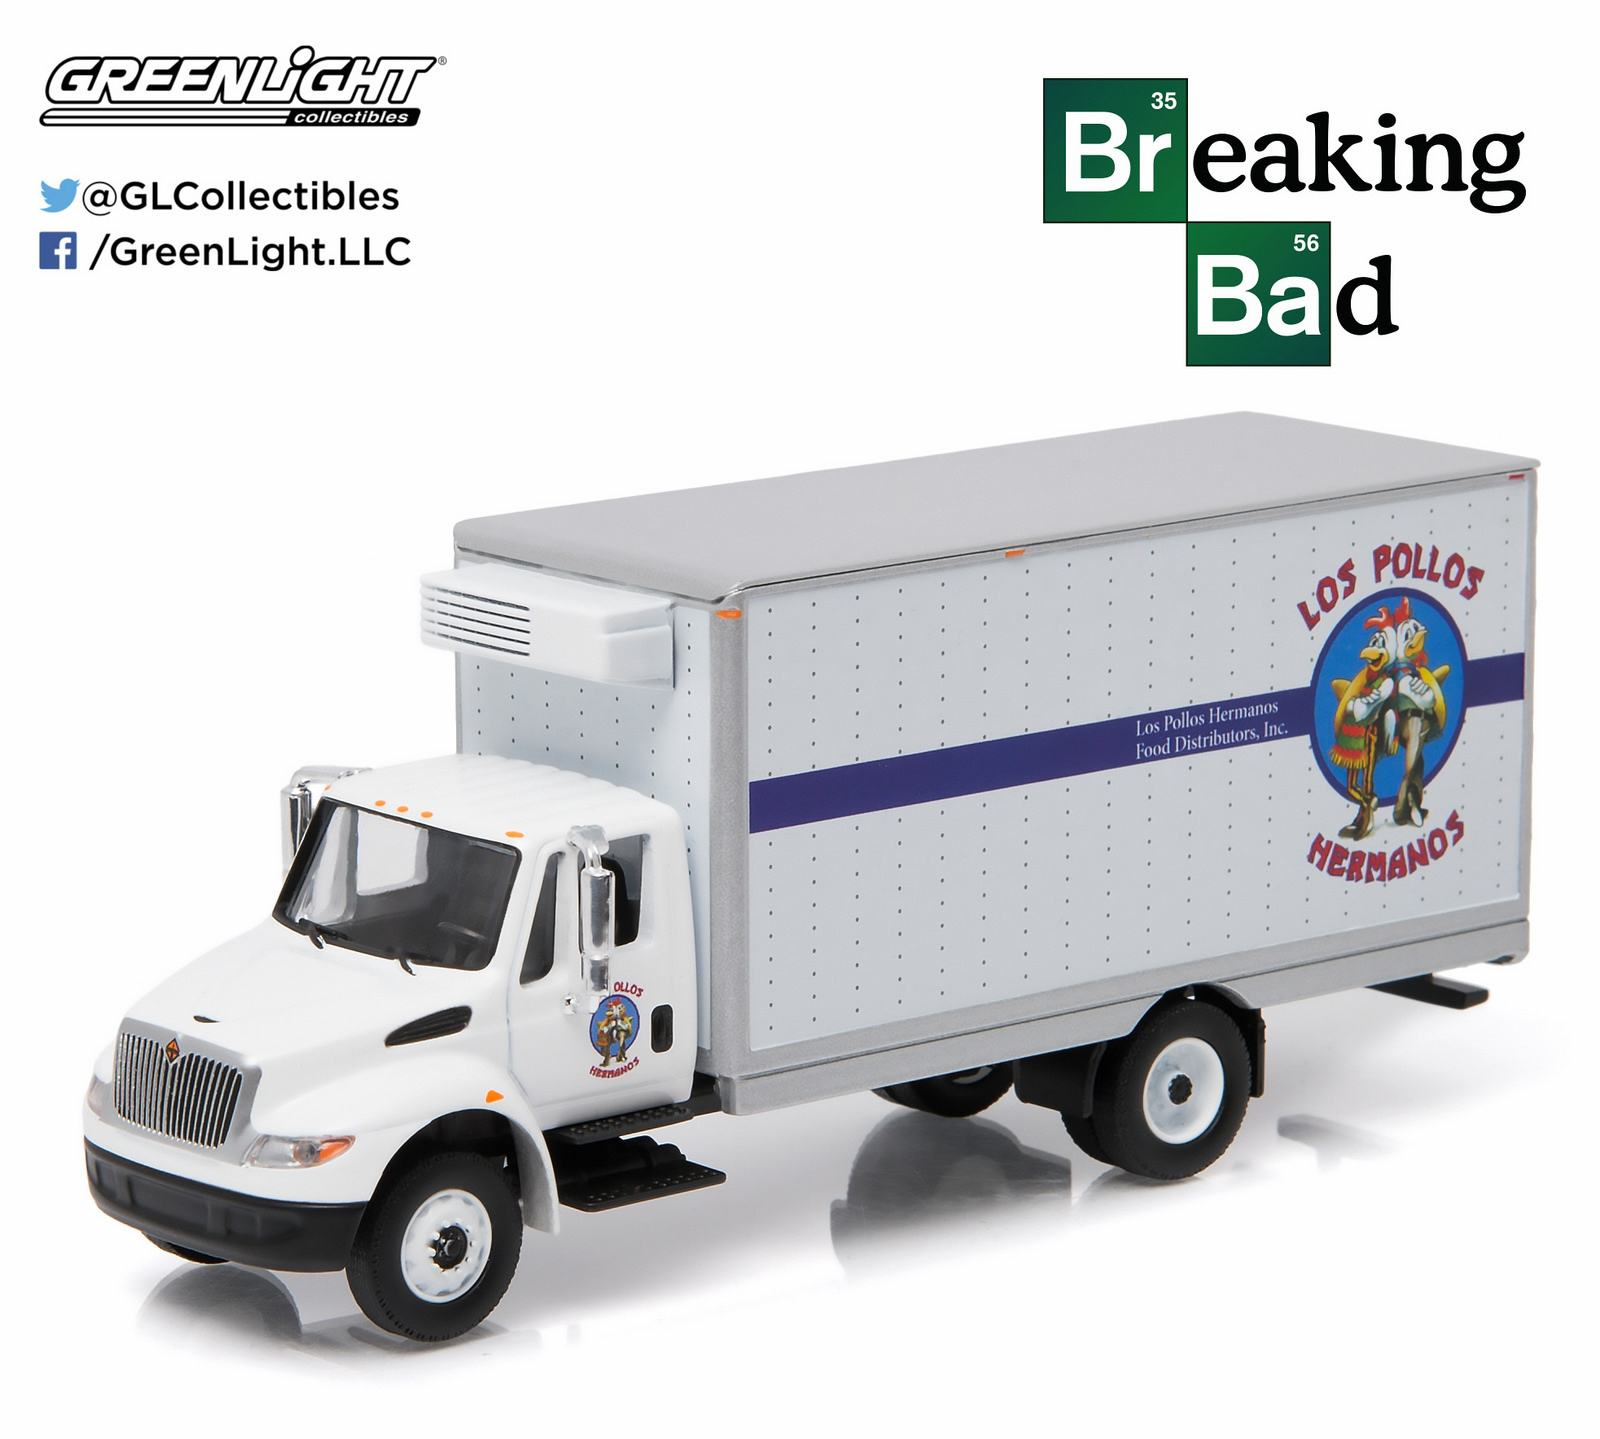 Caminhao-Los-Pollos-Hermanos-International-Box-Truck-1-64-Scale-Breaking-Bad-02